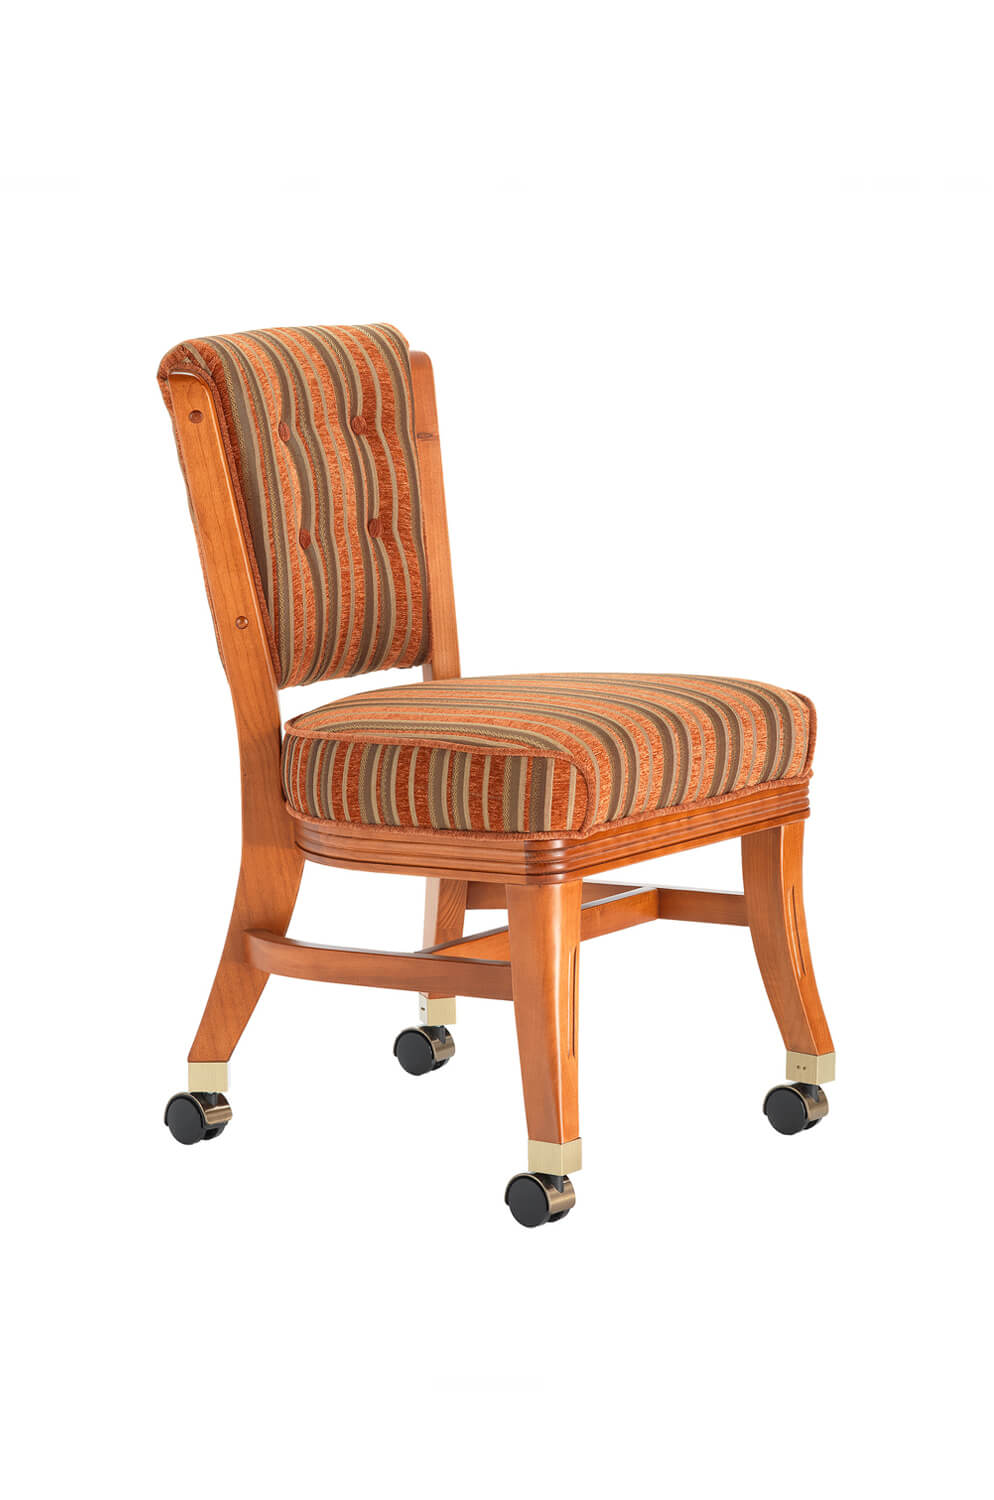 960 Maple Wood Upholstered Dining Chair with Casters